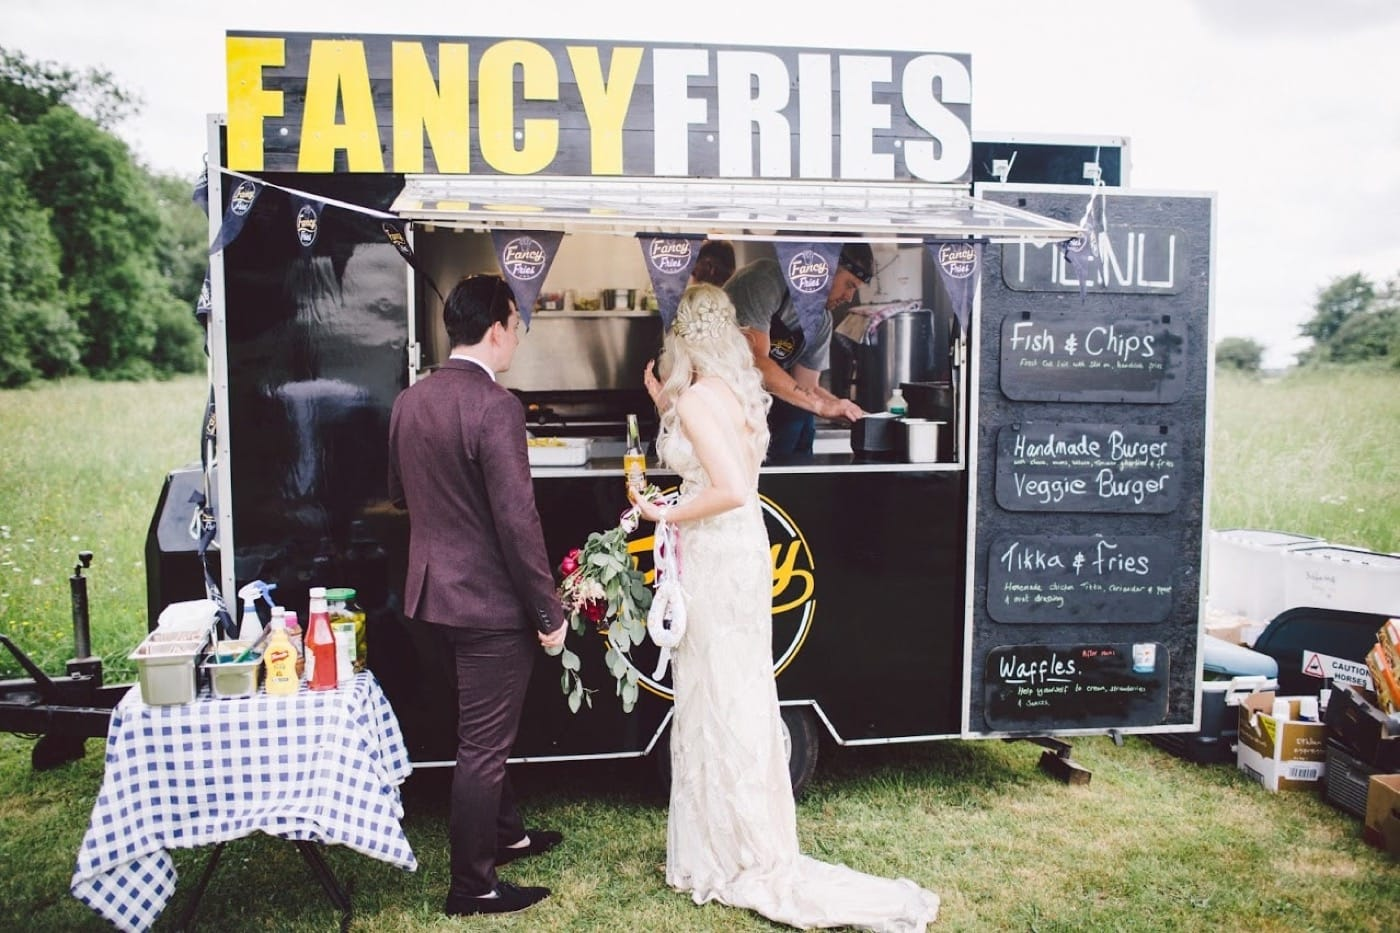 Feast-It-Fancy-Fries-Birmingham-Street-Food-Burger-Chips-Event-Catering-Book-Now